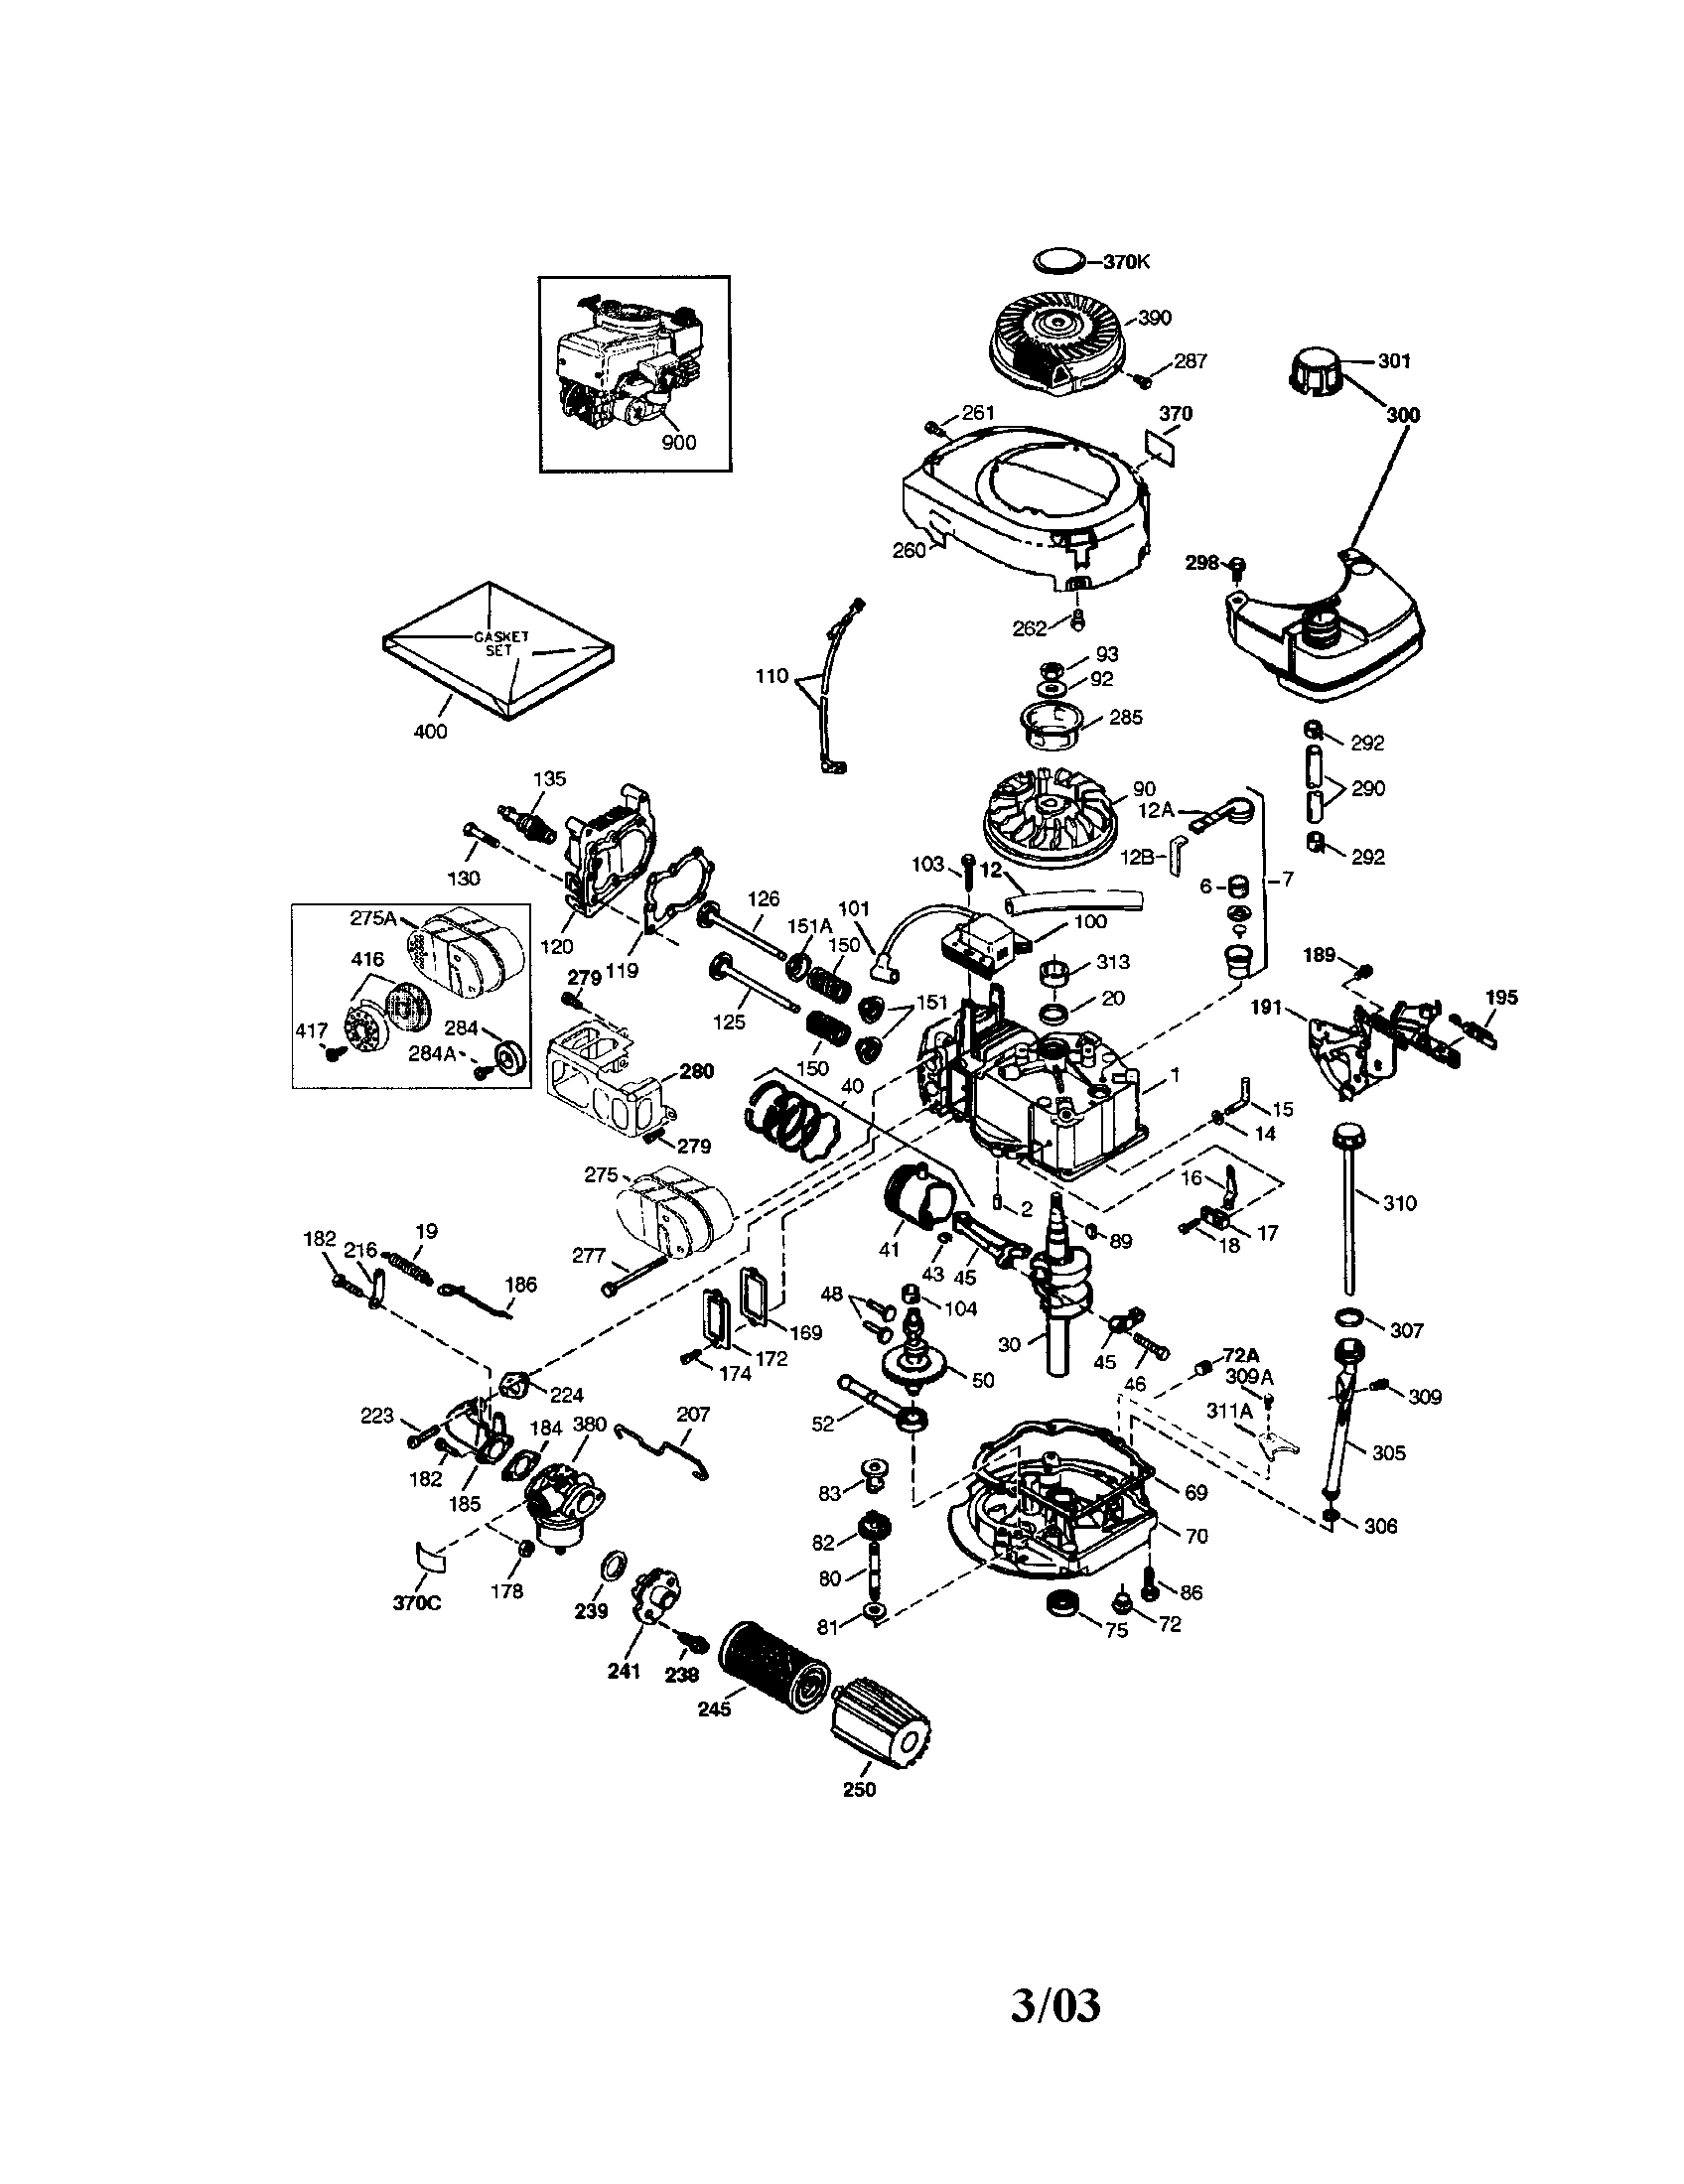 tecumseh engine diagram 143 416082 auto electrical wiring diagram HP G60 Notebook PC f 150 truck wiring harness toyota trailer wiring harness 1981 camaro fuse panel diagram dodge truck wiring diagram 1995 hp g60 laptop lcd wiring